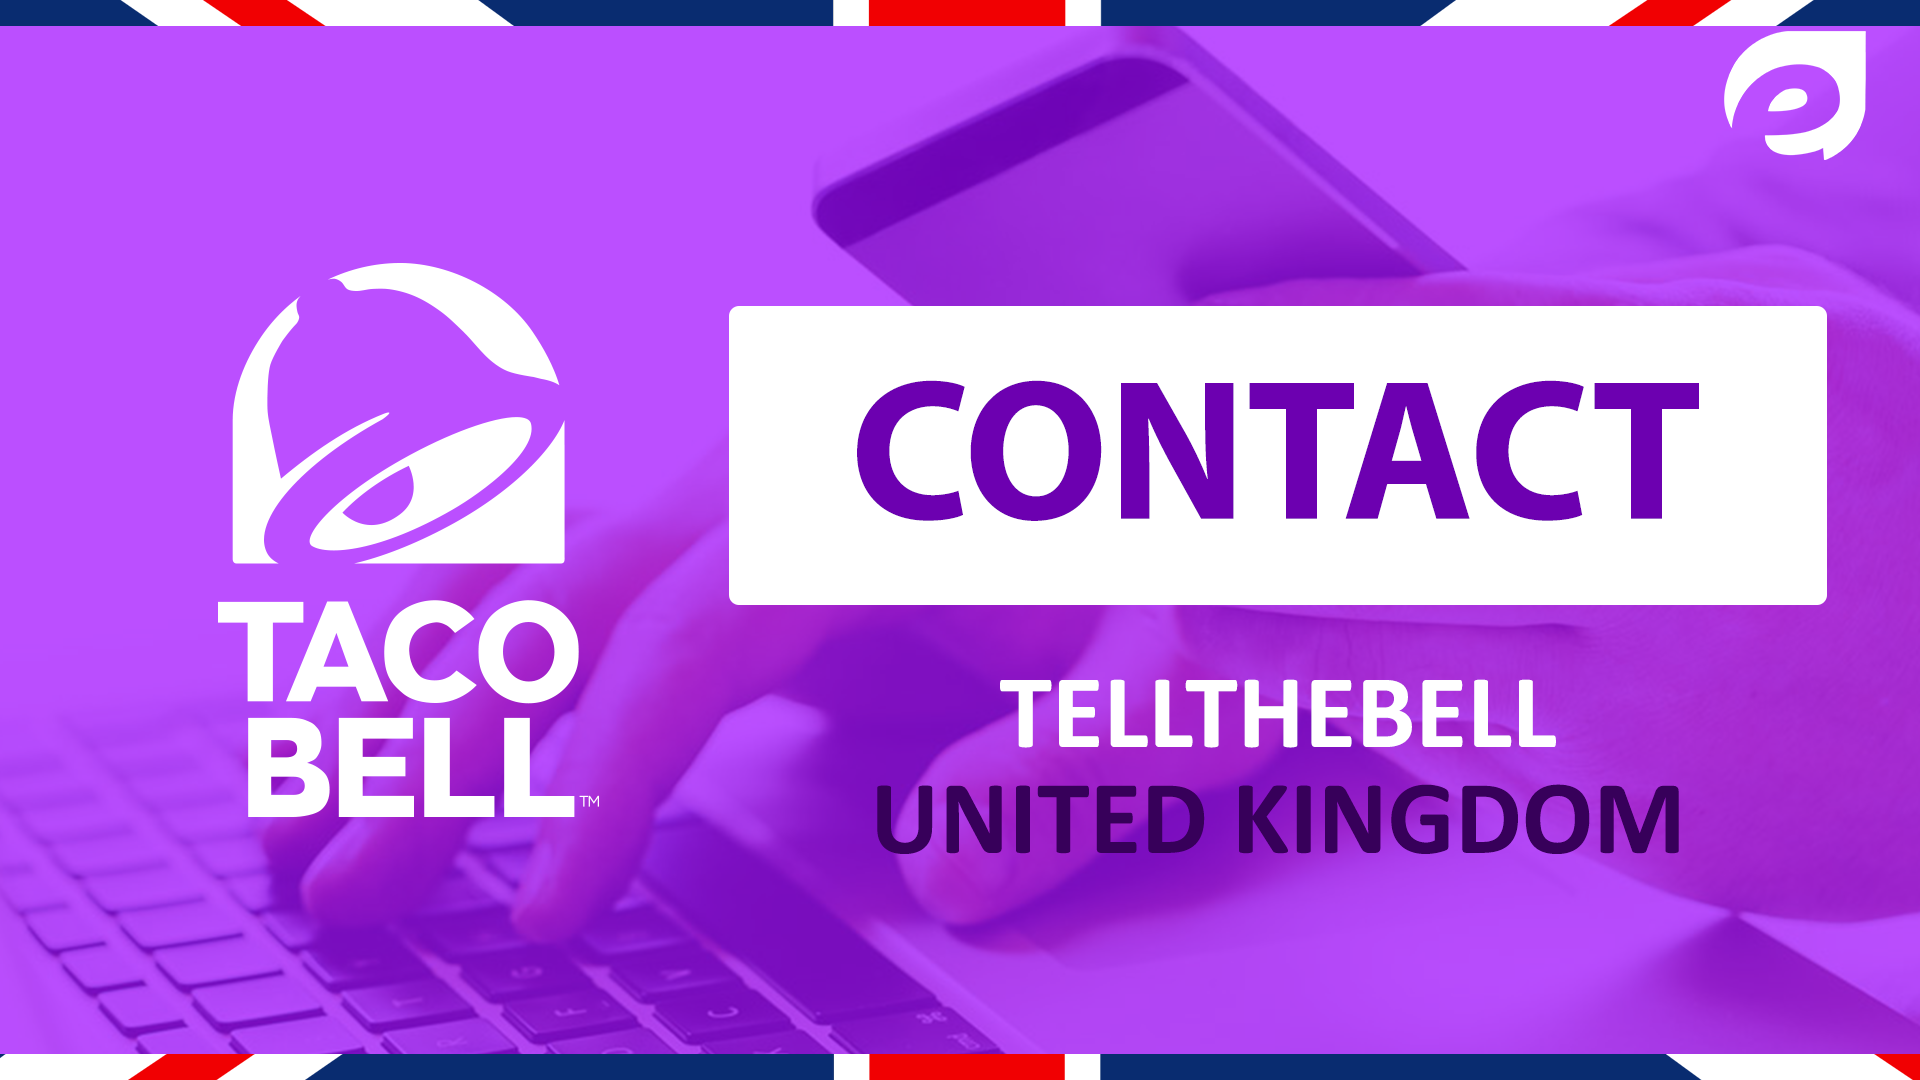 tellthebell uk - contact taco bell